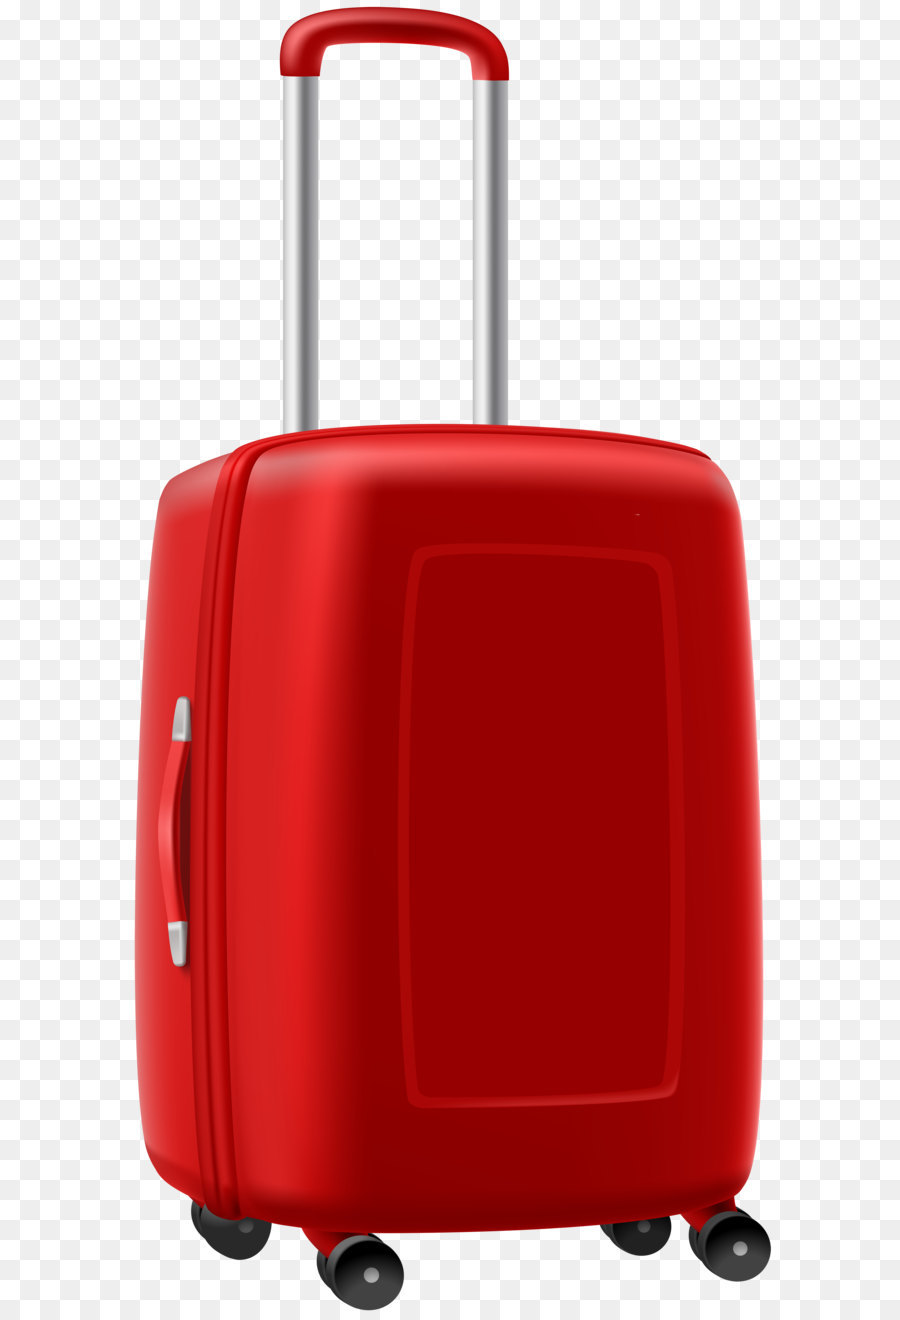 Suitcase Baggage Royalty-free Clip Art --Suitcase Baggage Royalty-free Clip art - Trolley Suitcase PNG Clipart Image-9